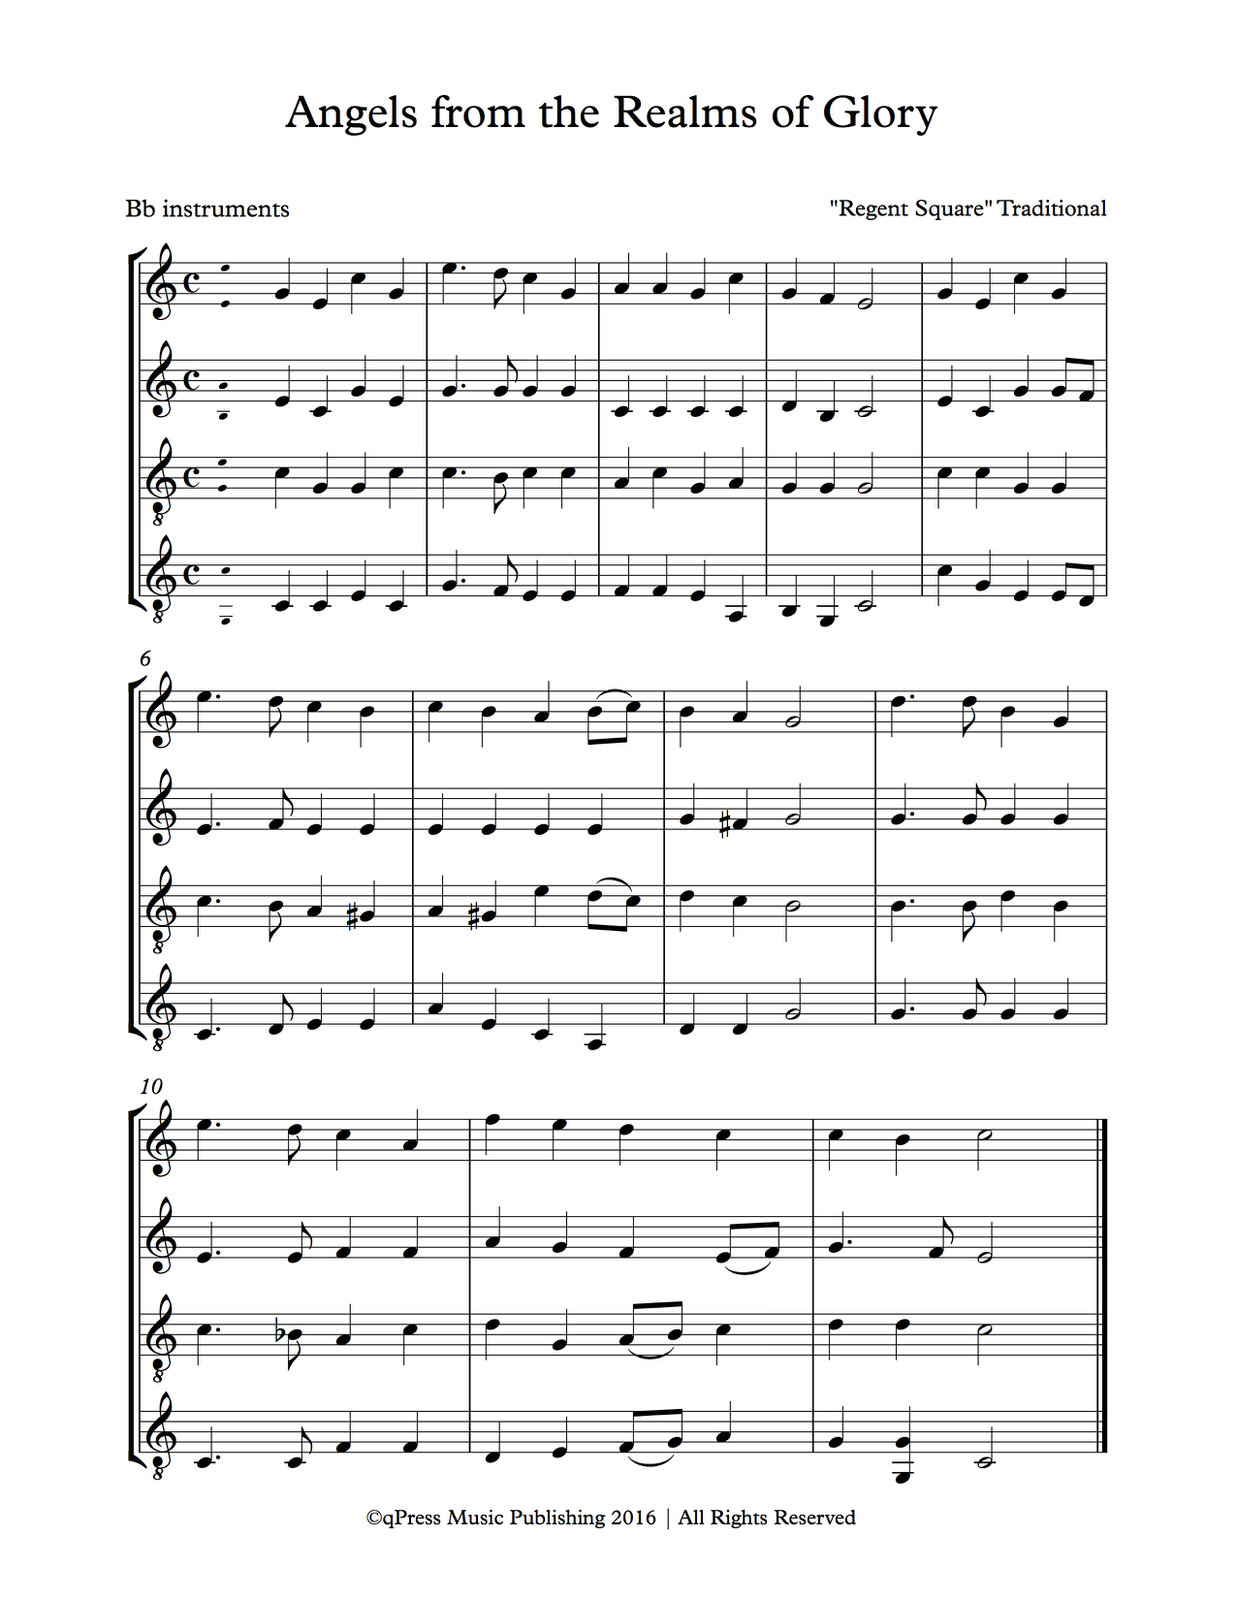 various-traditional-carols-for-1-4-treble-clef-instruments